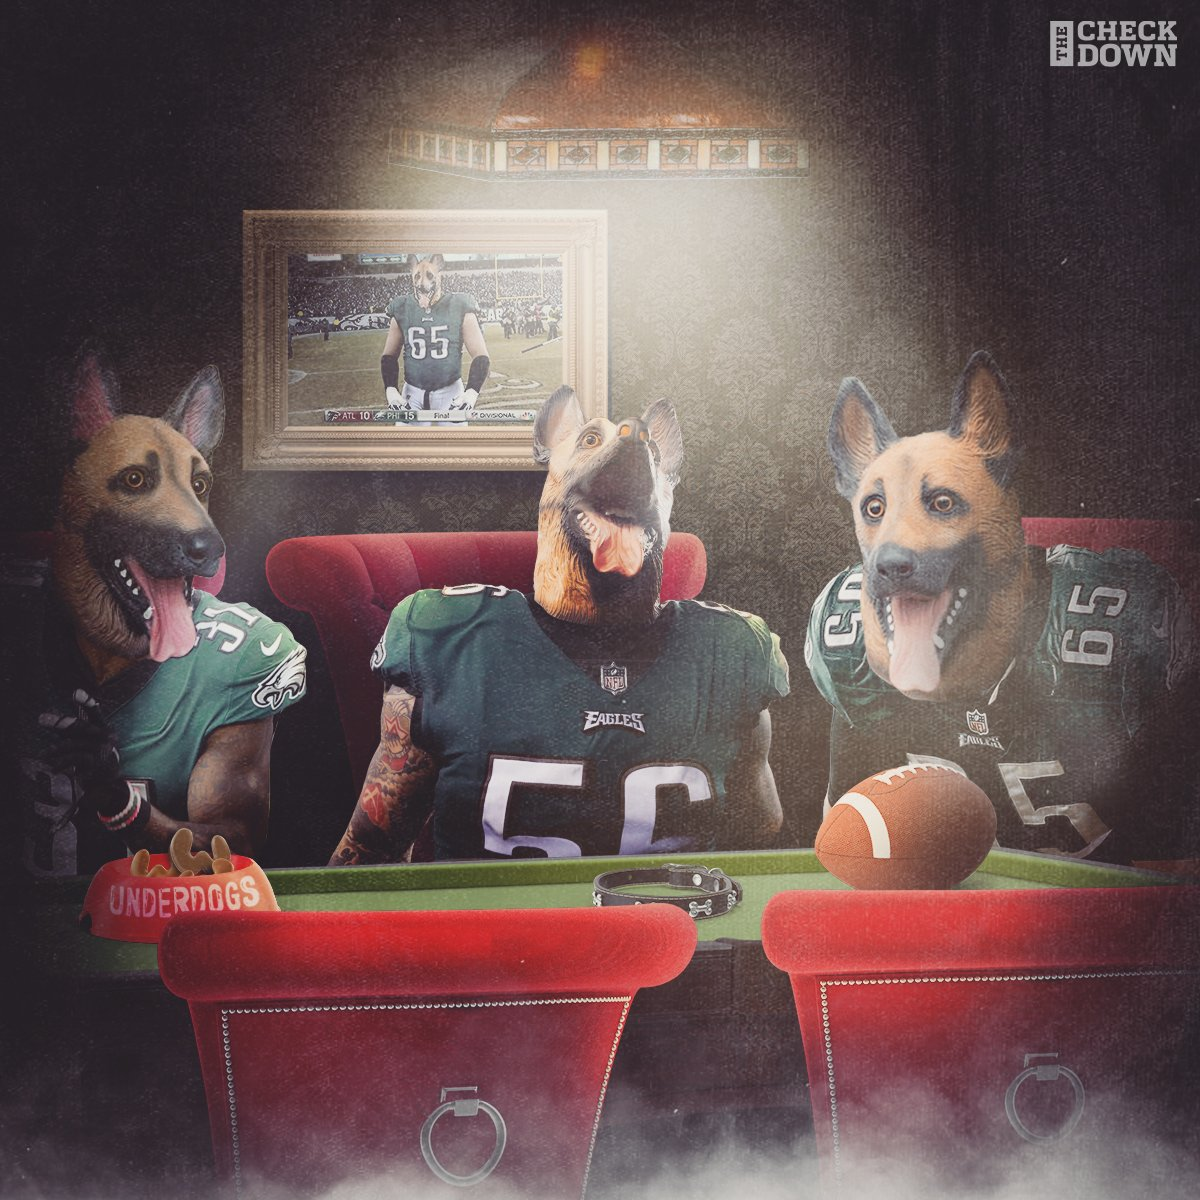 Underdogs? NOPE!  The @Eagles are heading to the @SuperBowl! #FlyEaglesFly #SBLII (via @thecheckdown) https://t.co/Tvs446EBIN